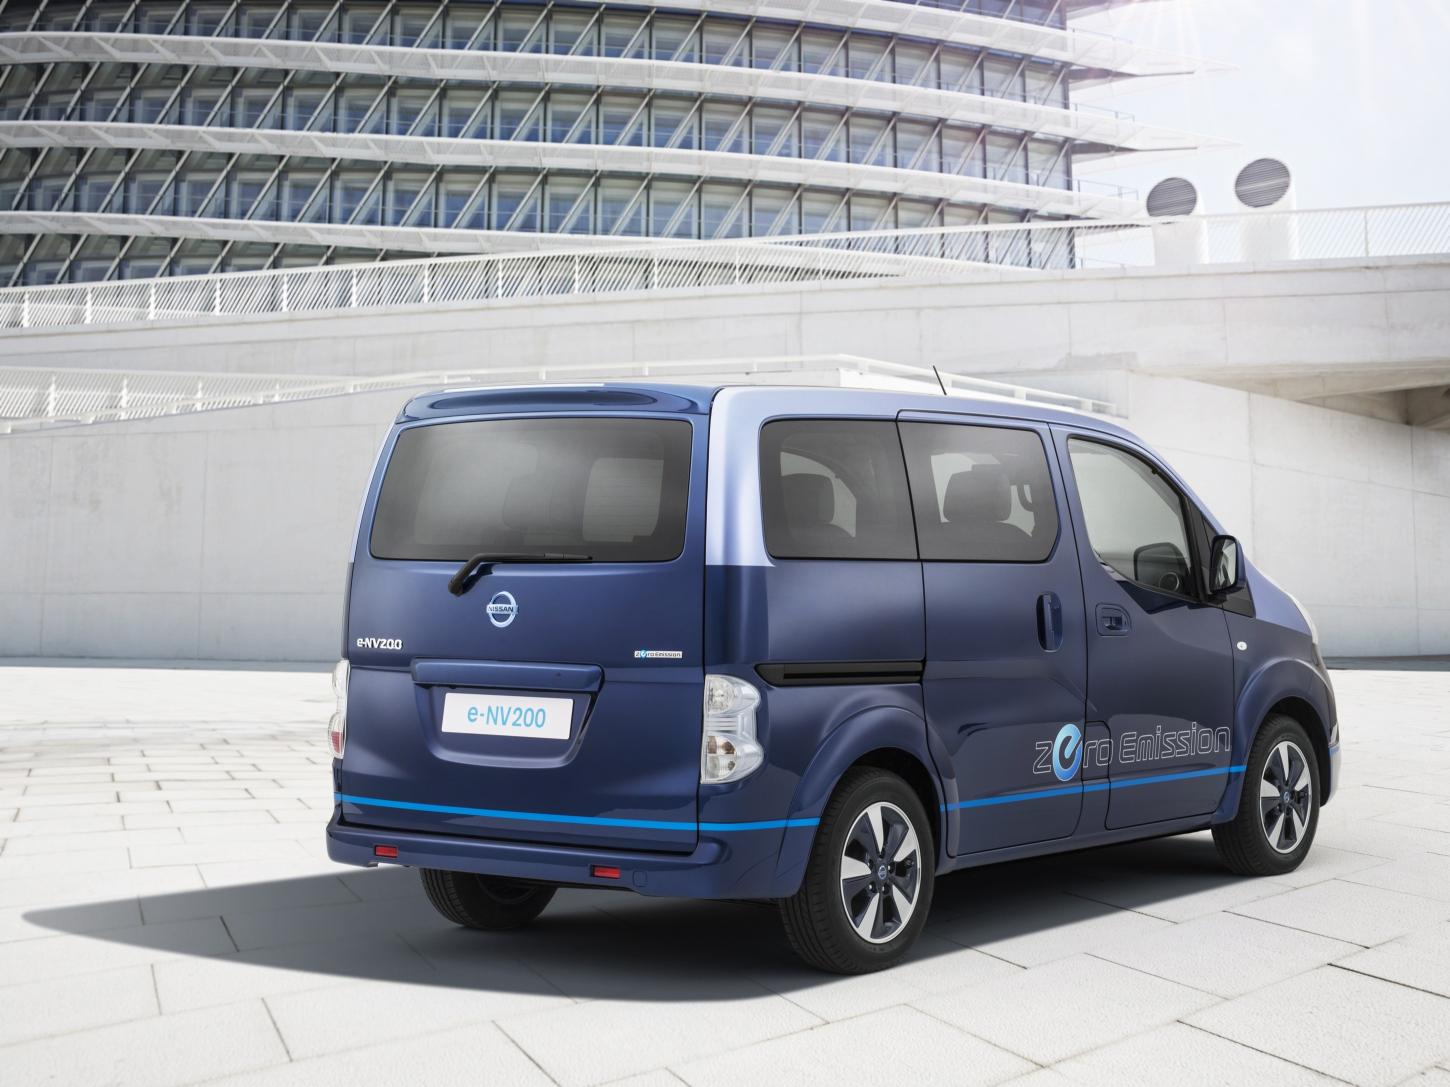 Nissan E Nv200 Upgraded For Vip Shuttle Services